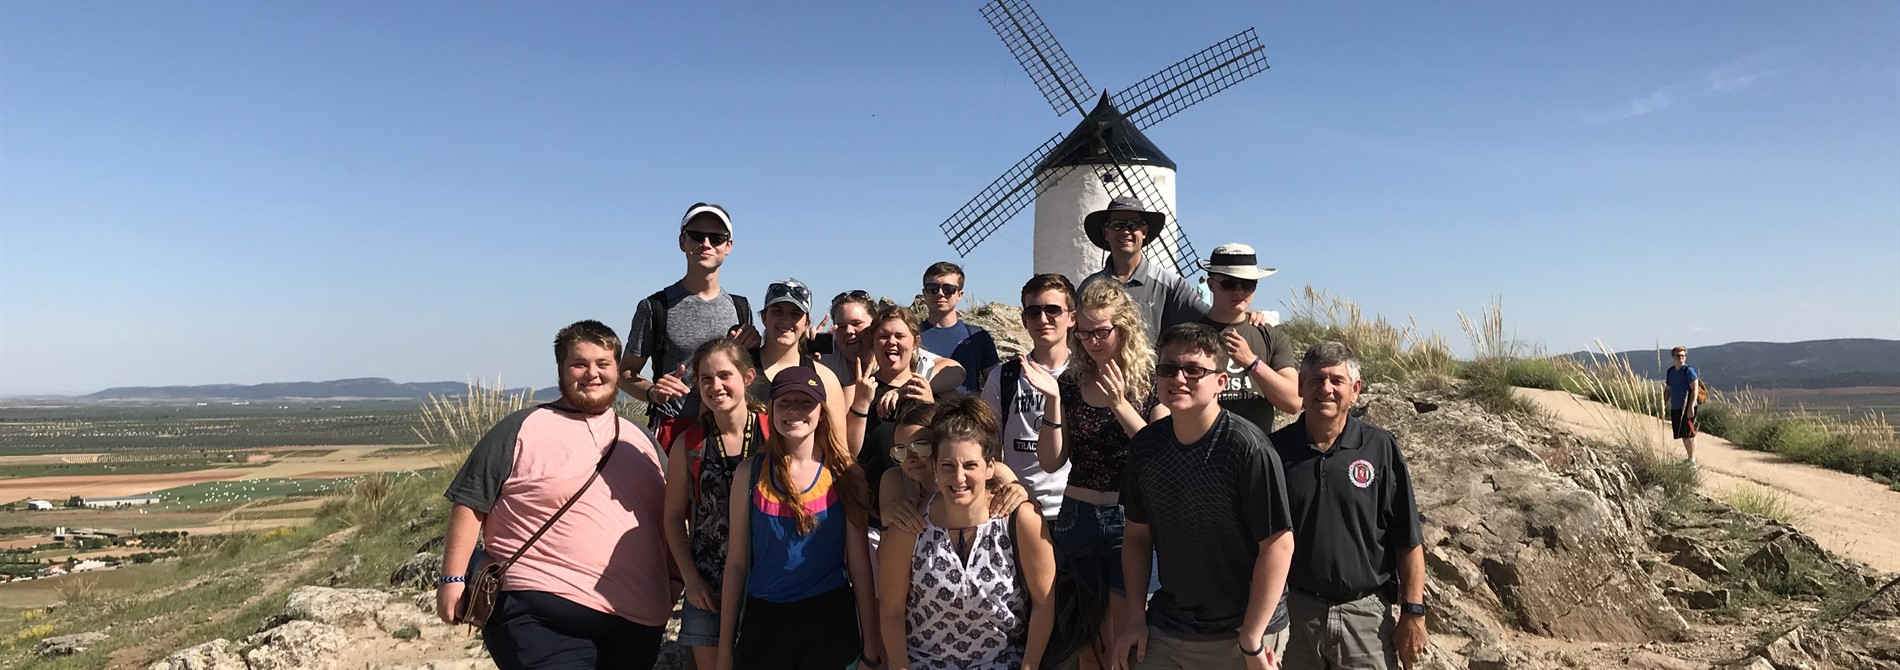 Students, traveling with Mr. Sims, visit the windmills that inspired Miguel de Cervantes's story of Don Quixote.